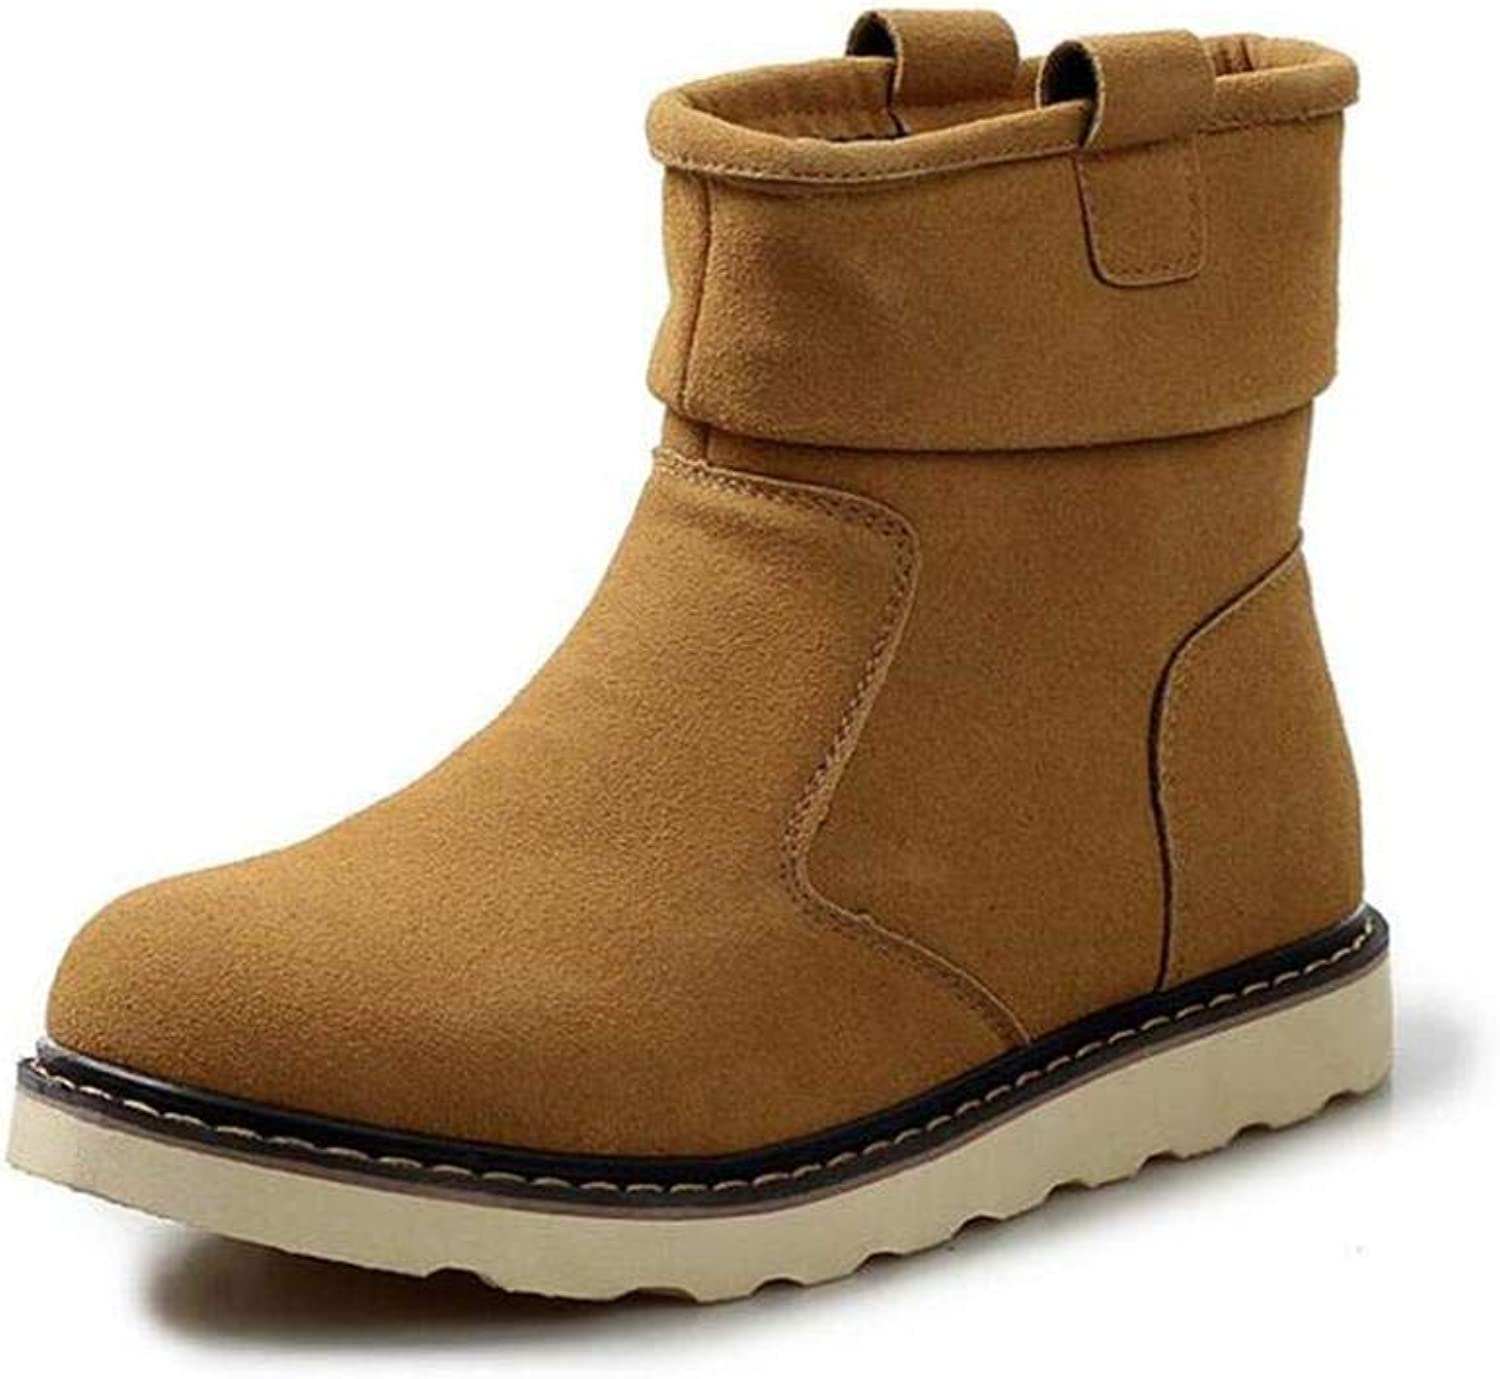 H&H Men's Snow Boots, Winter Mill Sand Plus Cashmere Warm Windproof Winter Boots, Formal shoes, Martins Boots